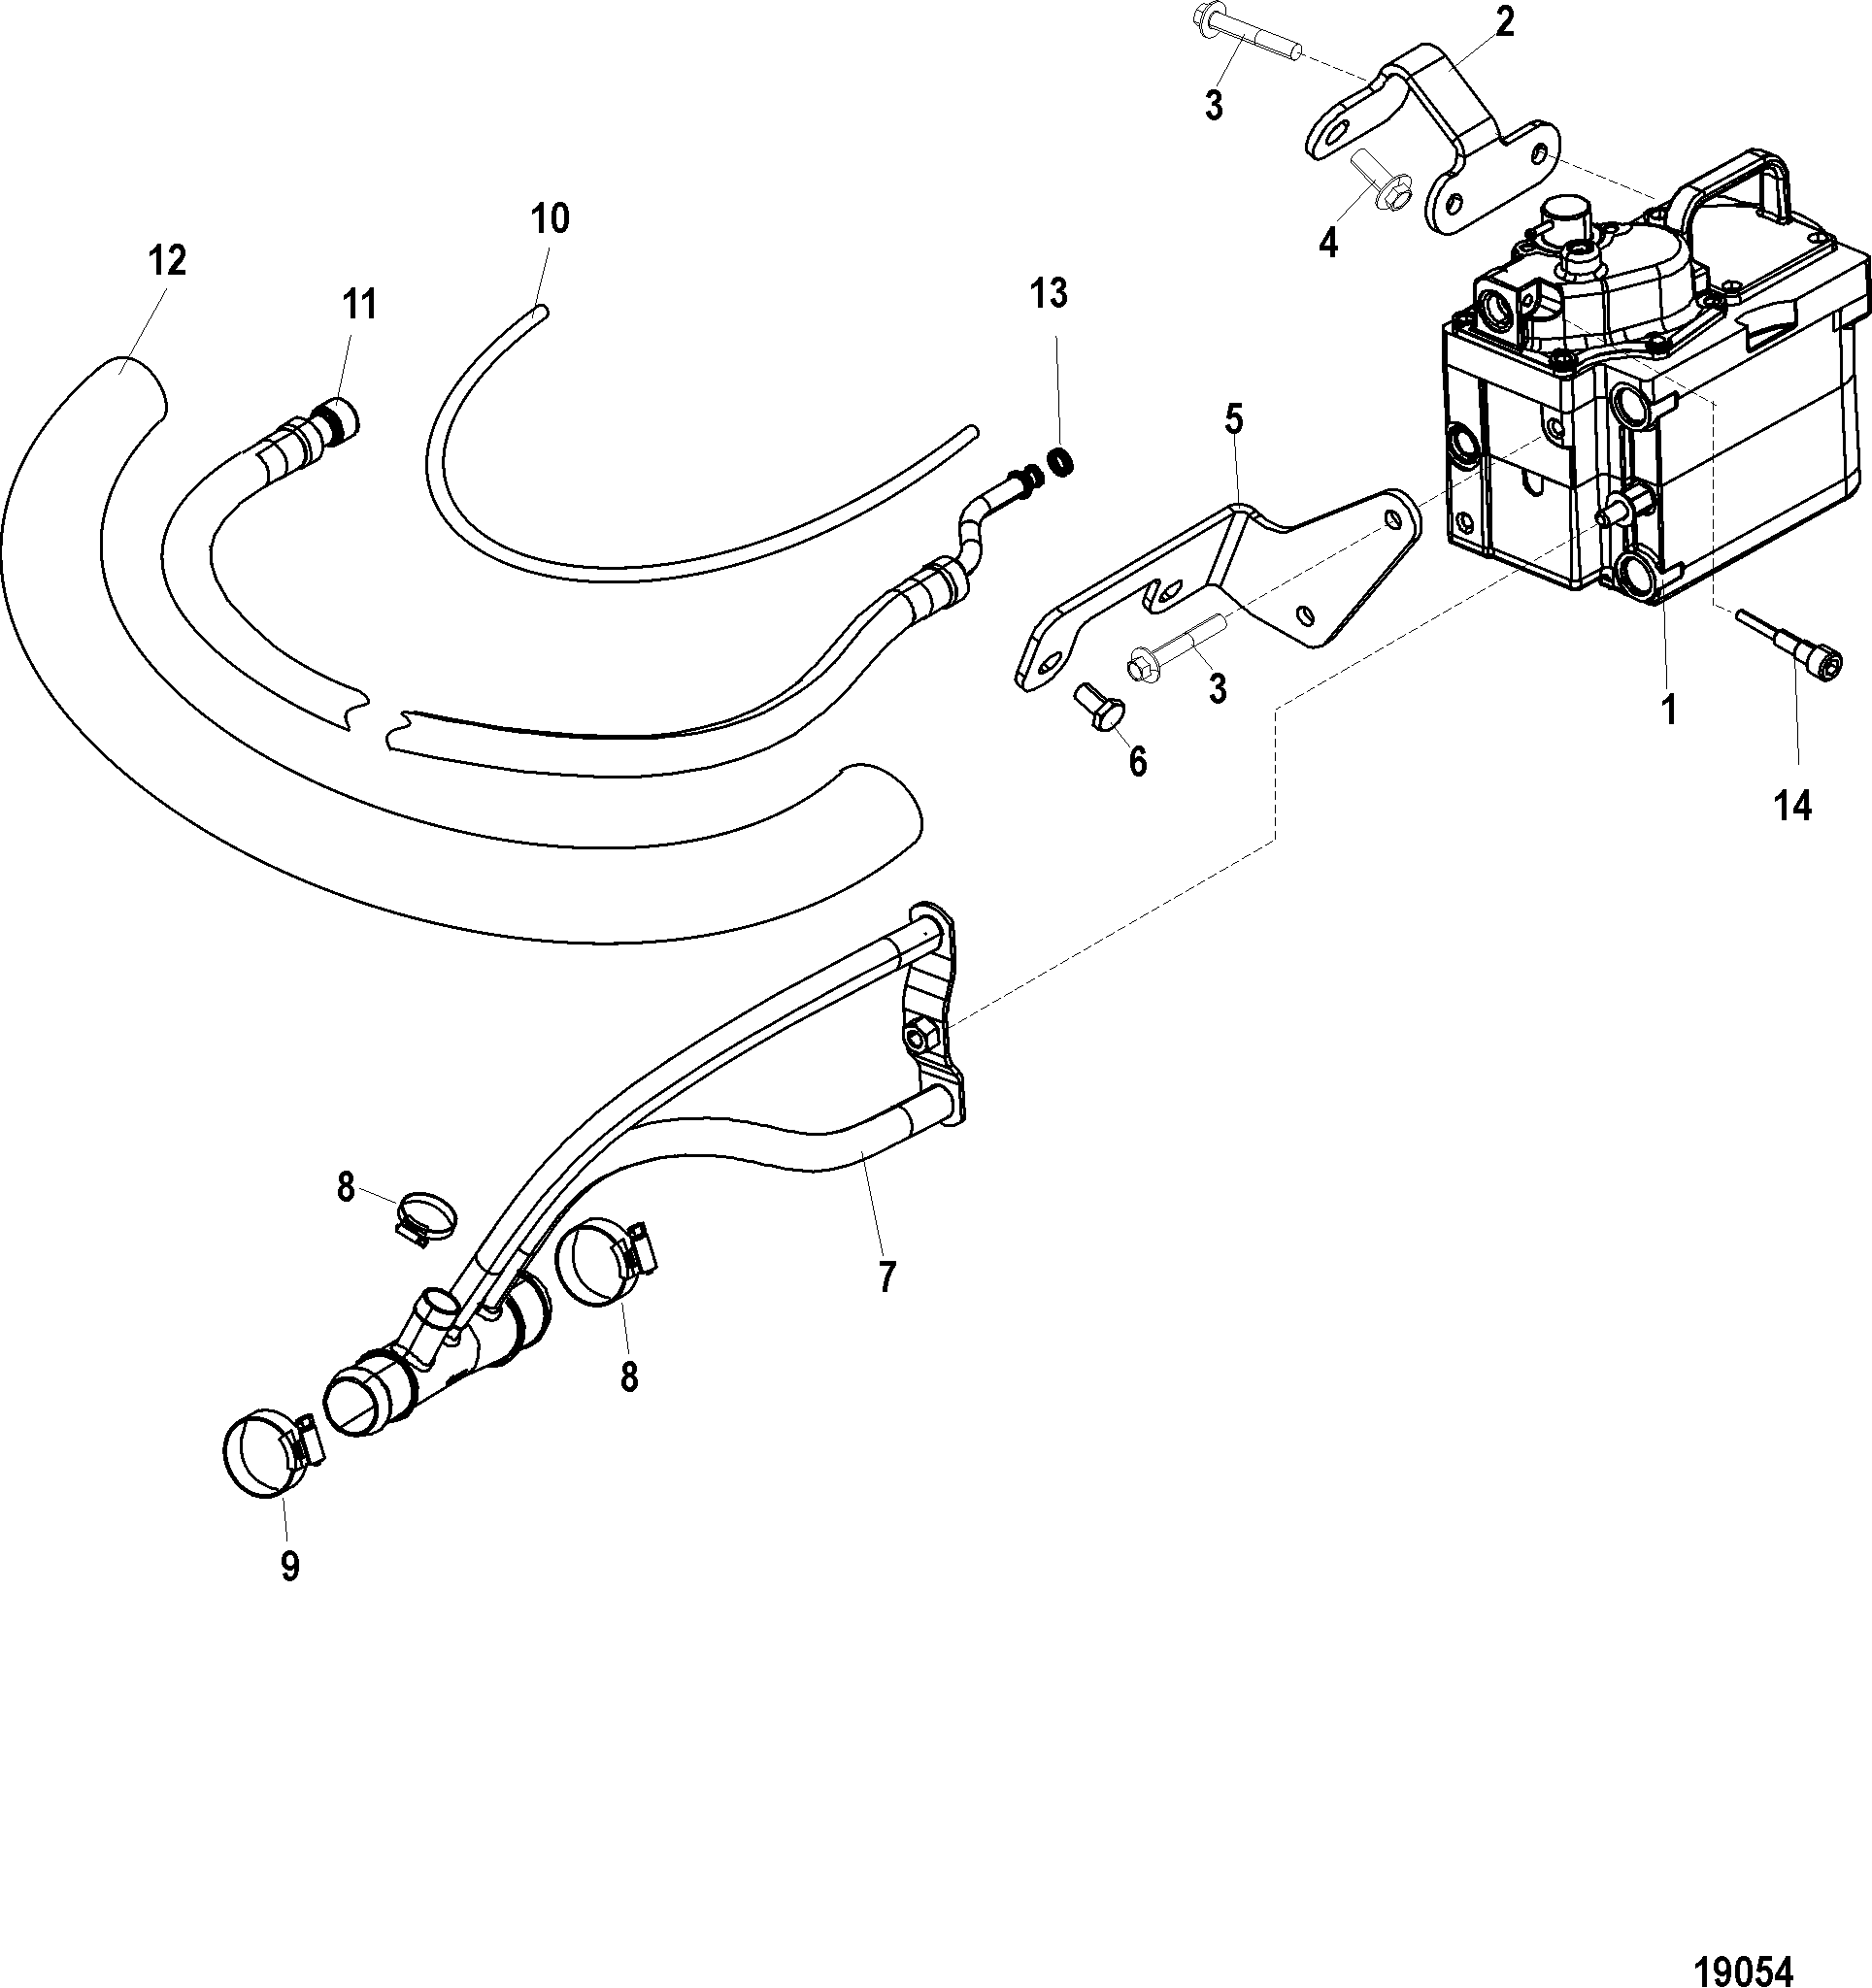 Cool Fuel System Sn 1a Amp Below For Mercruiser 496